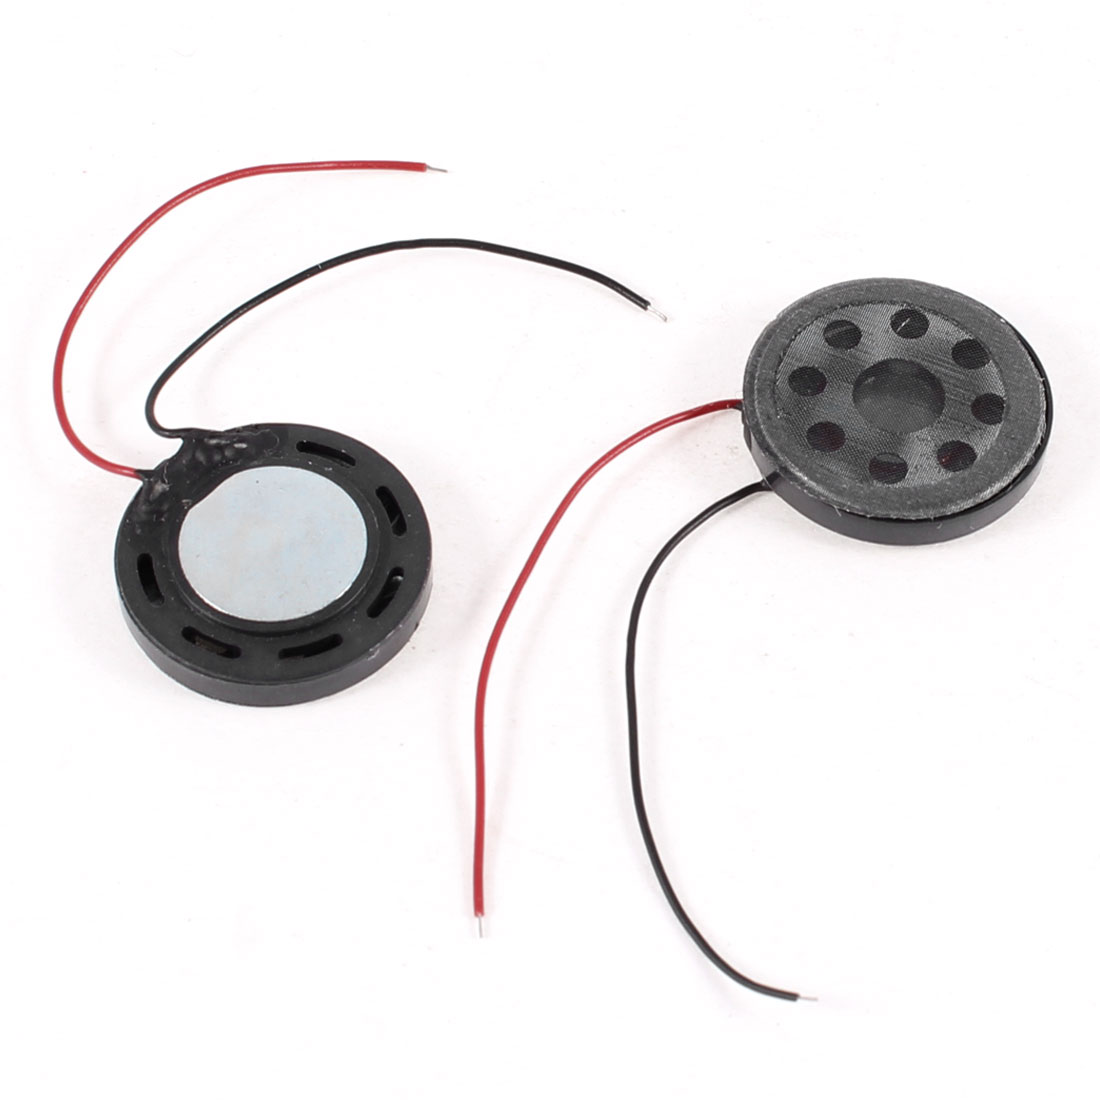 2pcs 20mm Round Magnetic Magnet Speaker Tweeter Horn 8 Ohm 1W